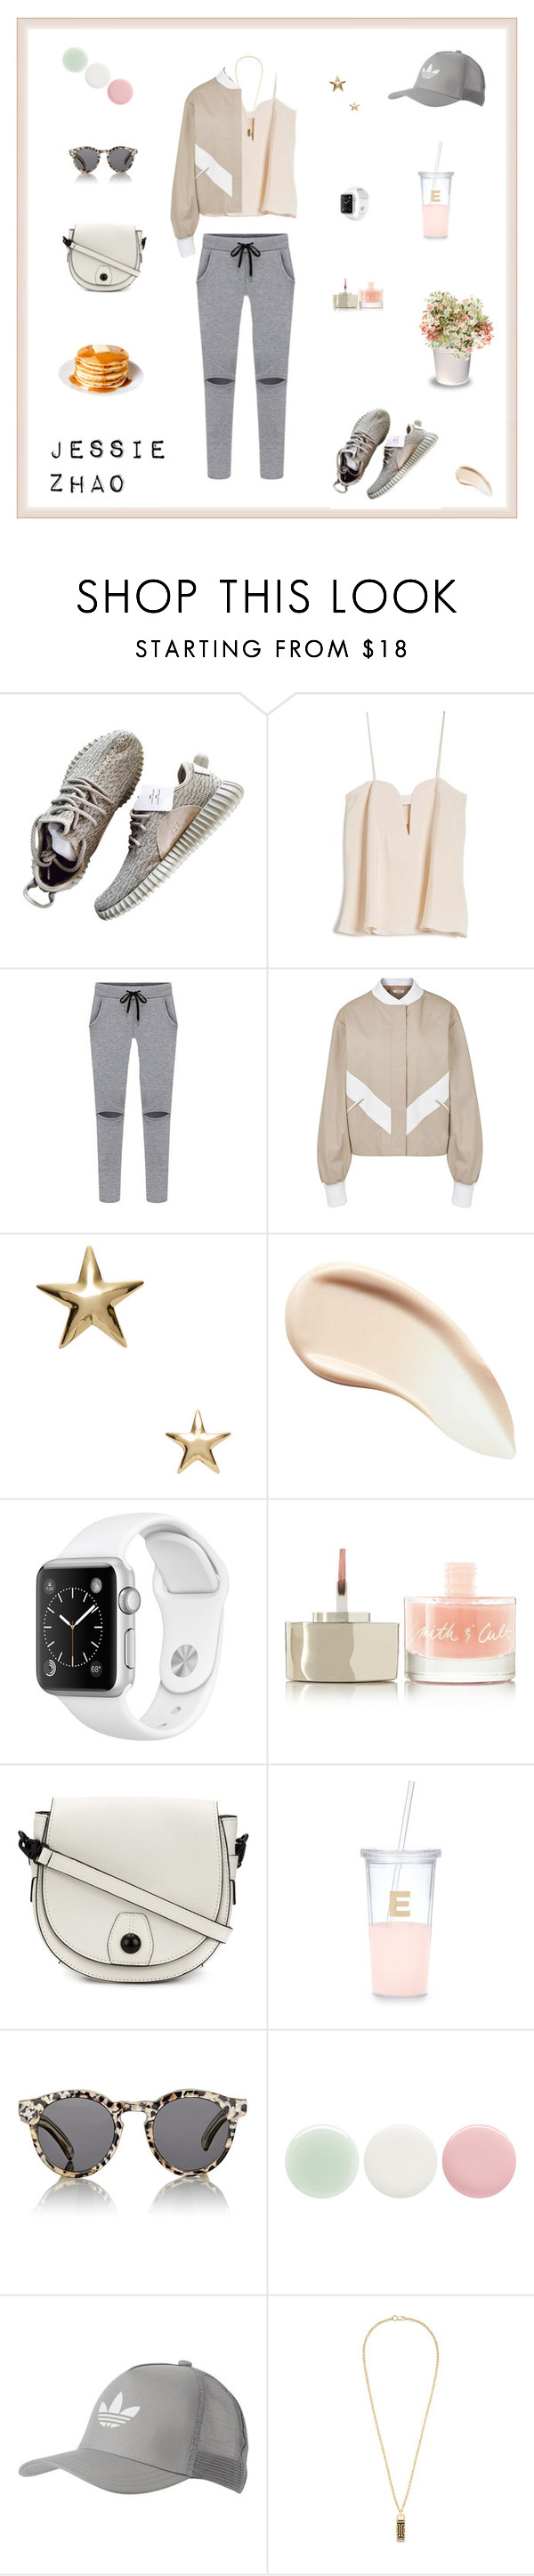 """Untitled #247"" by jesszzz on Polyvore featuring OTTE, Adeam, Kenneth Jay Lane, Burberry, Smith & Cult, rag & bone, Kate Spade, Illesteva, Nails Inc. and adidas Originals"